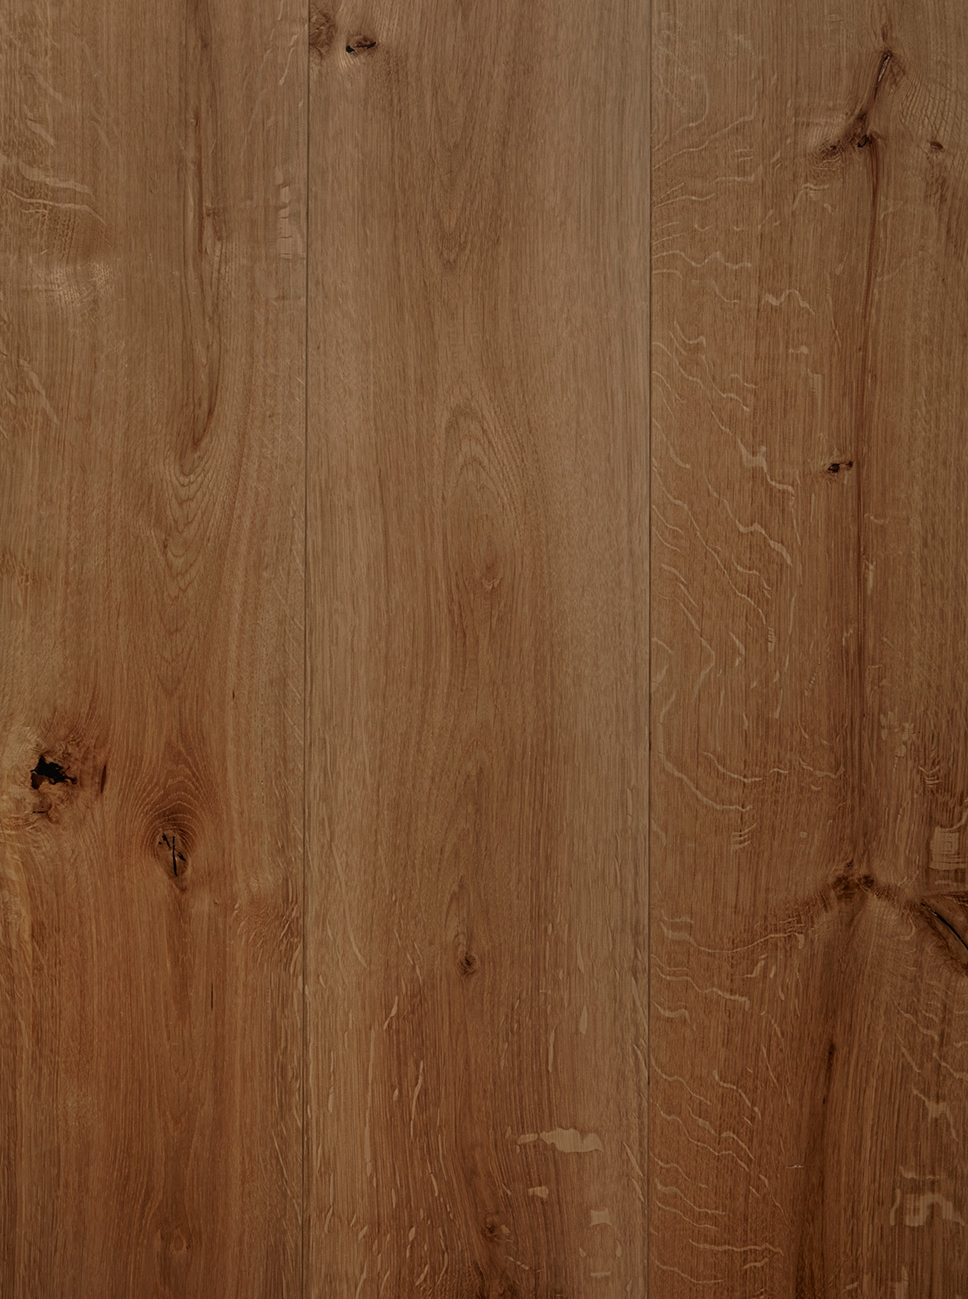 Select Harvest French Cut White Oak Hardwood Flooring [Barley Finish]